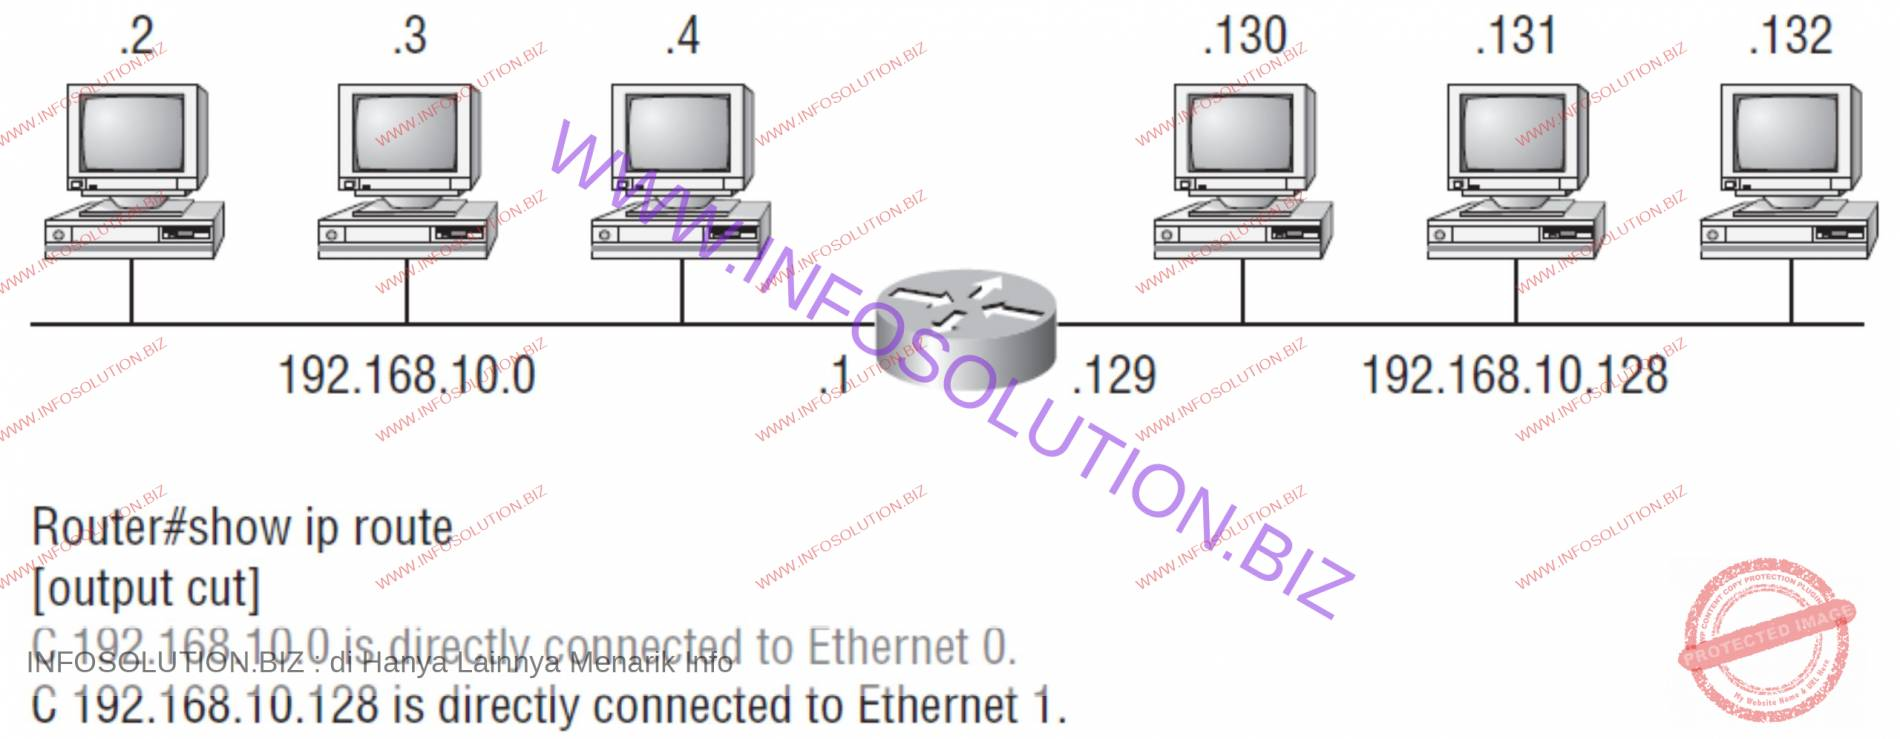 Implementing a Class C /25 logical network